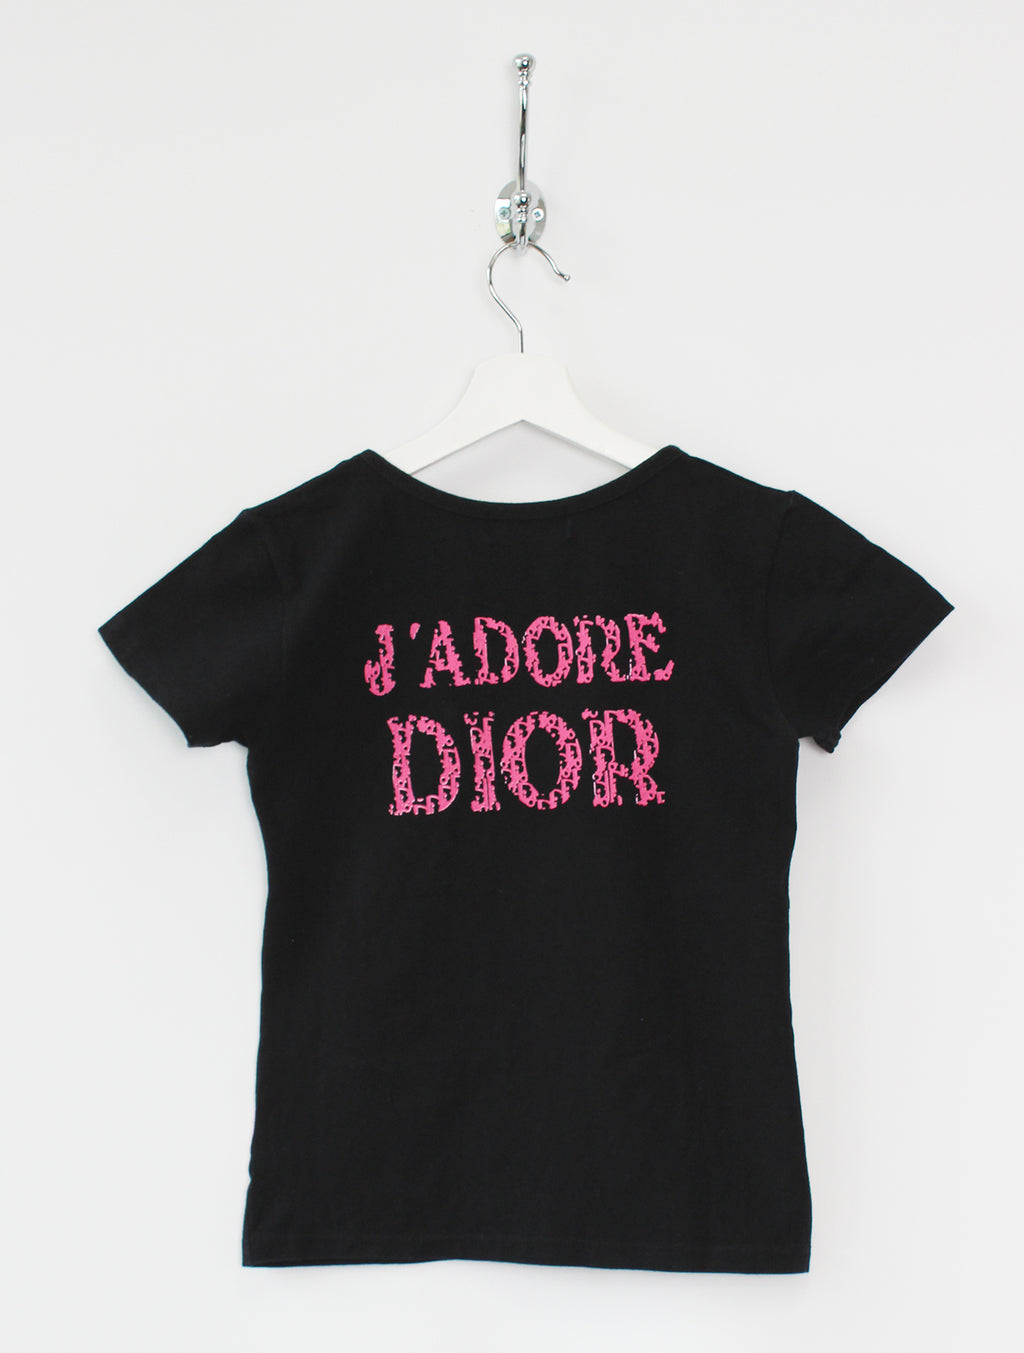 Women's Christian Dior T-Shirt (XS)